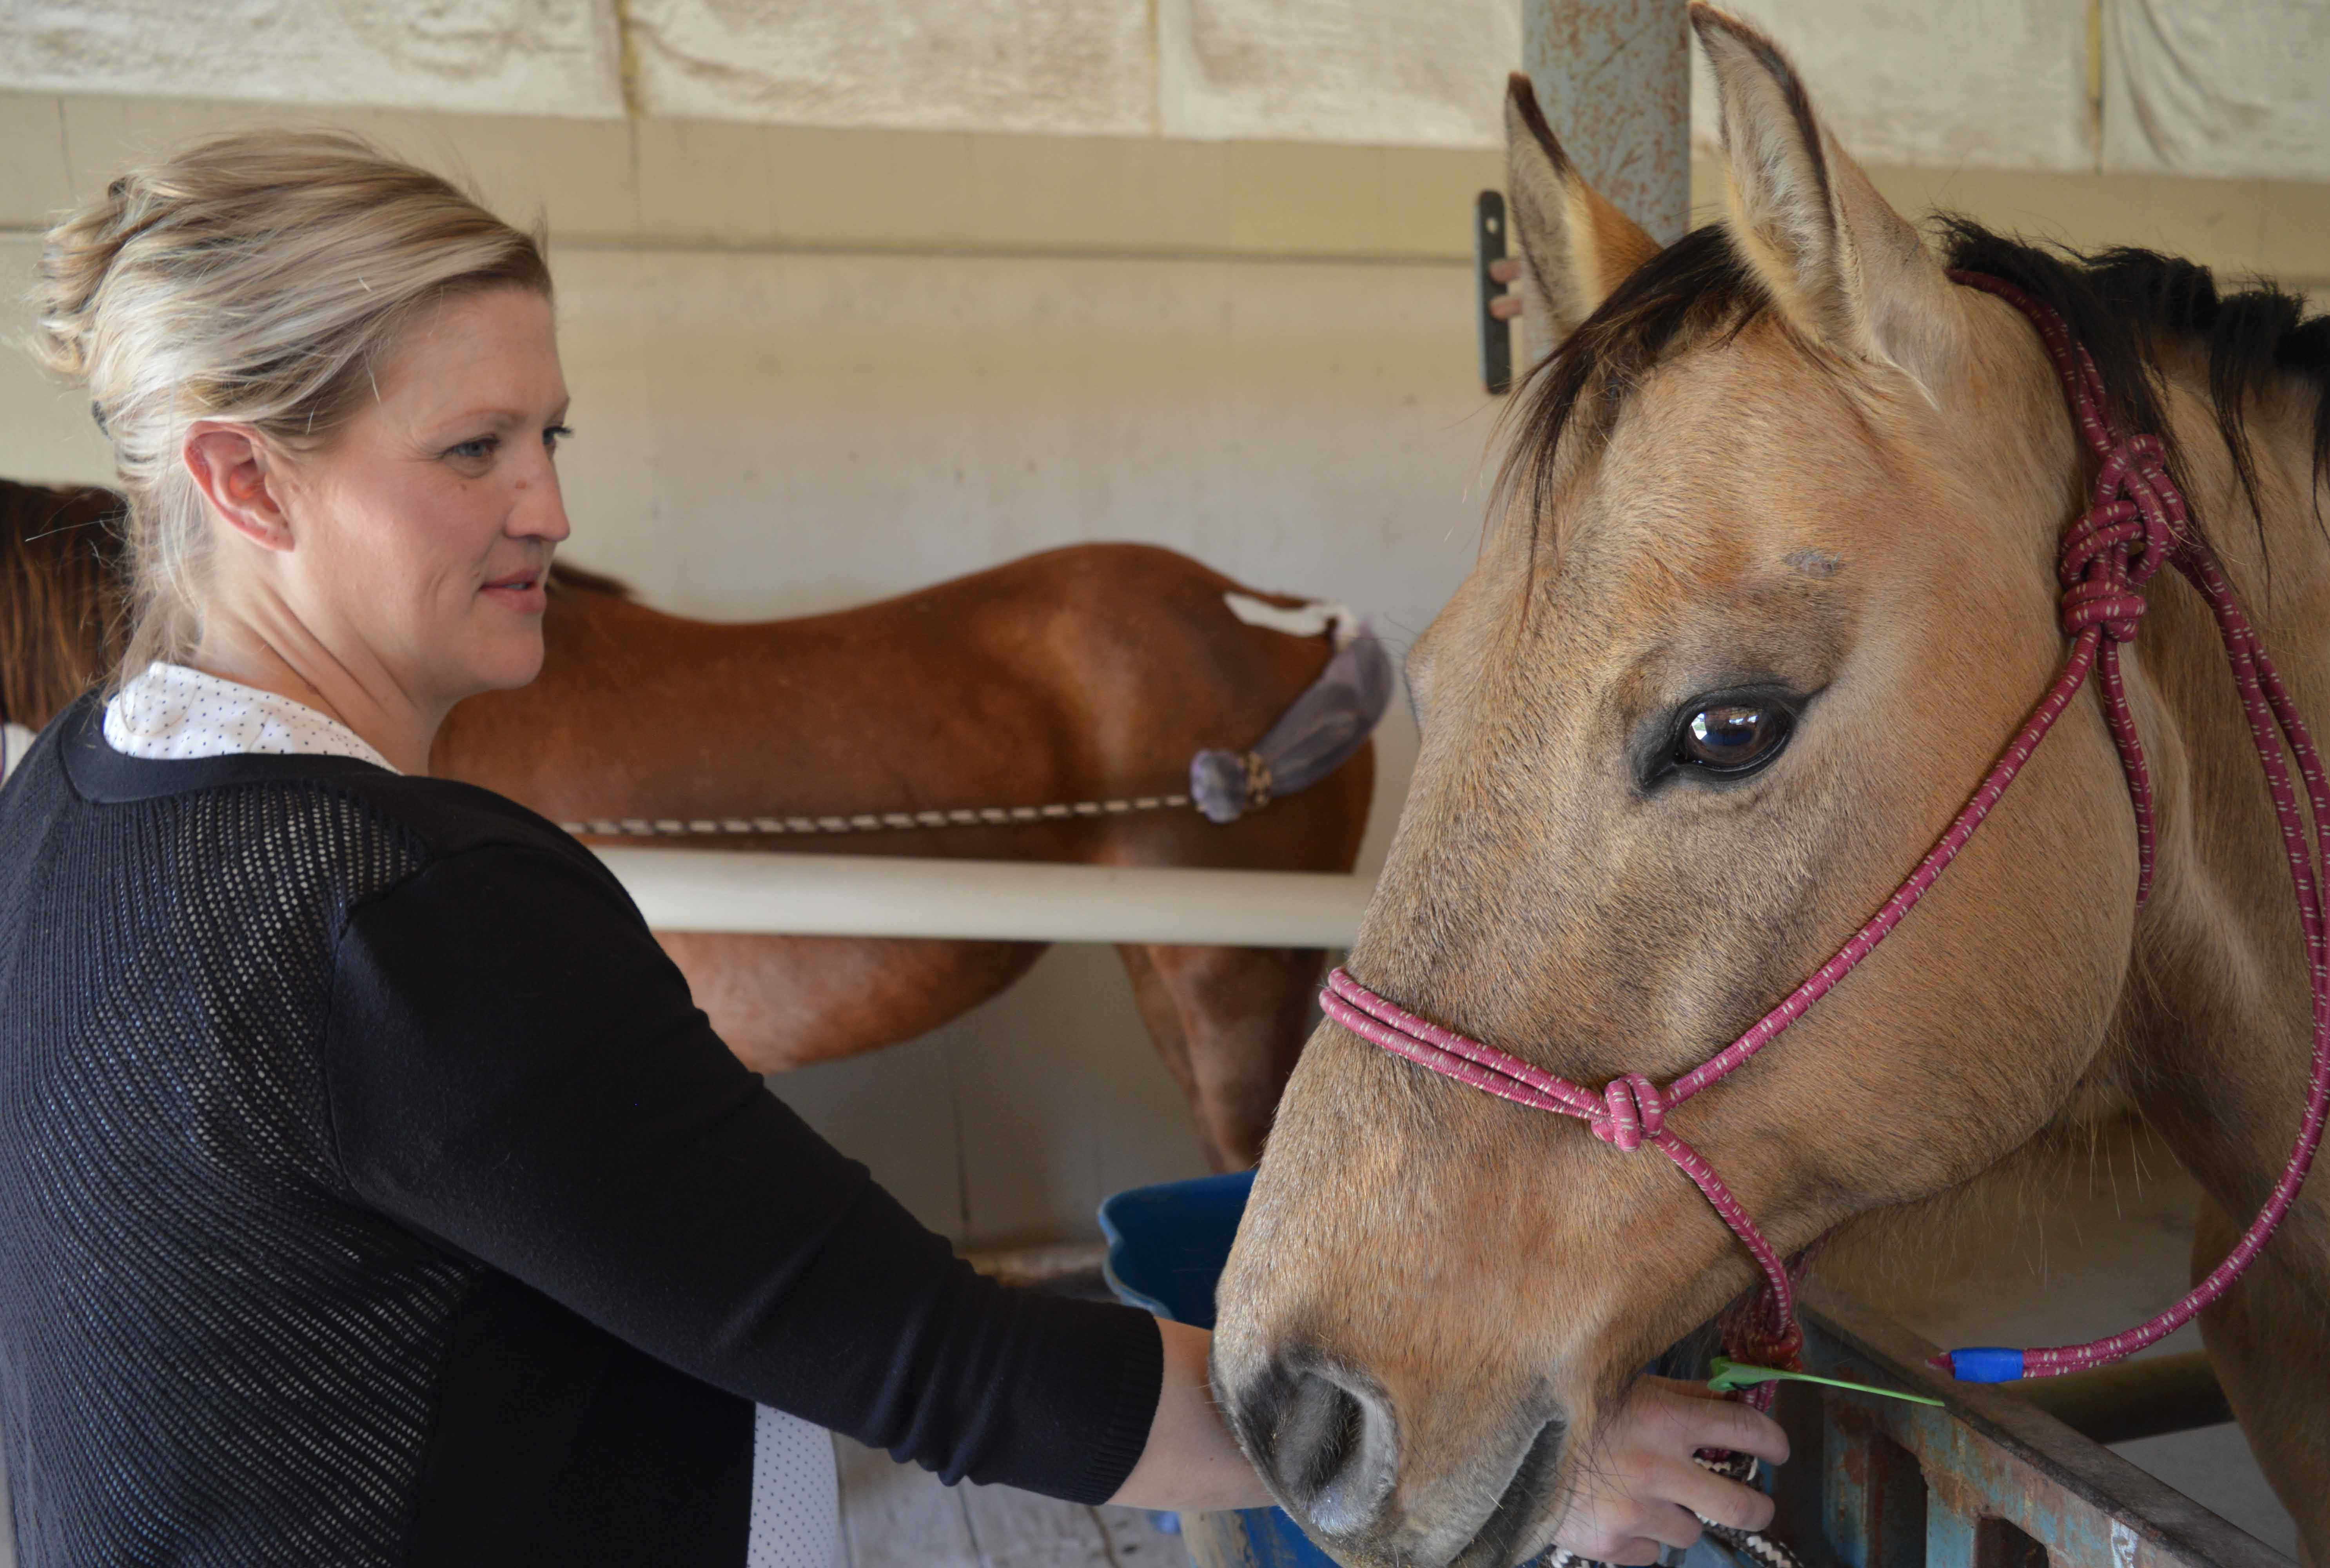 Animal Science professor Joanna Hergenreder teaches equine courses and coaches the NCTA Ranch Horse Team. (Crawford/NCTA News photo)